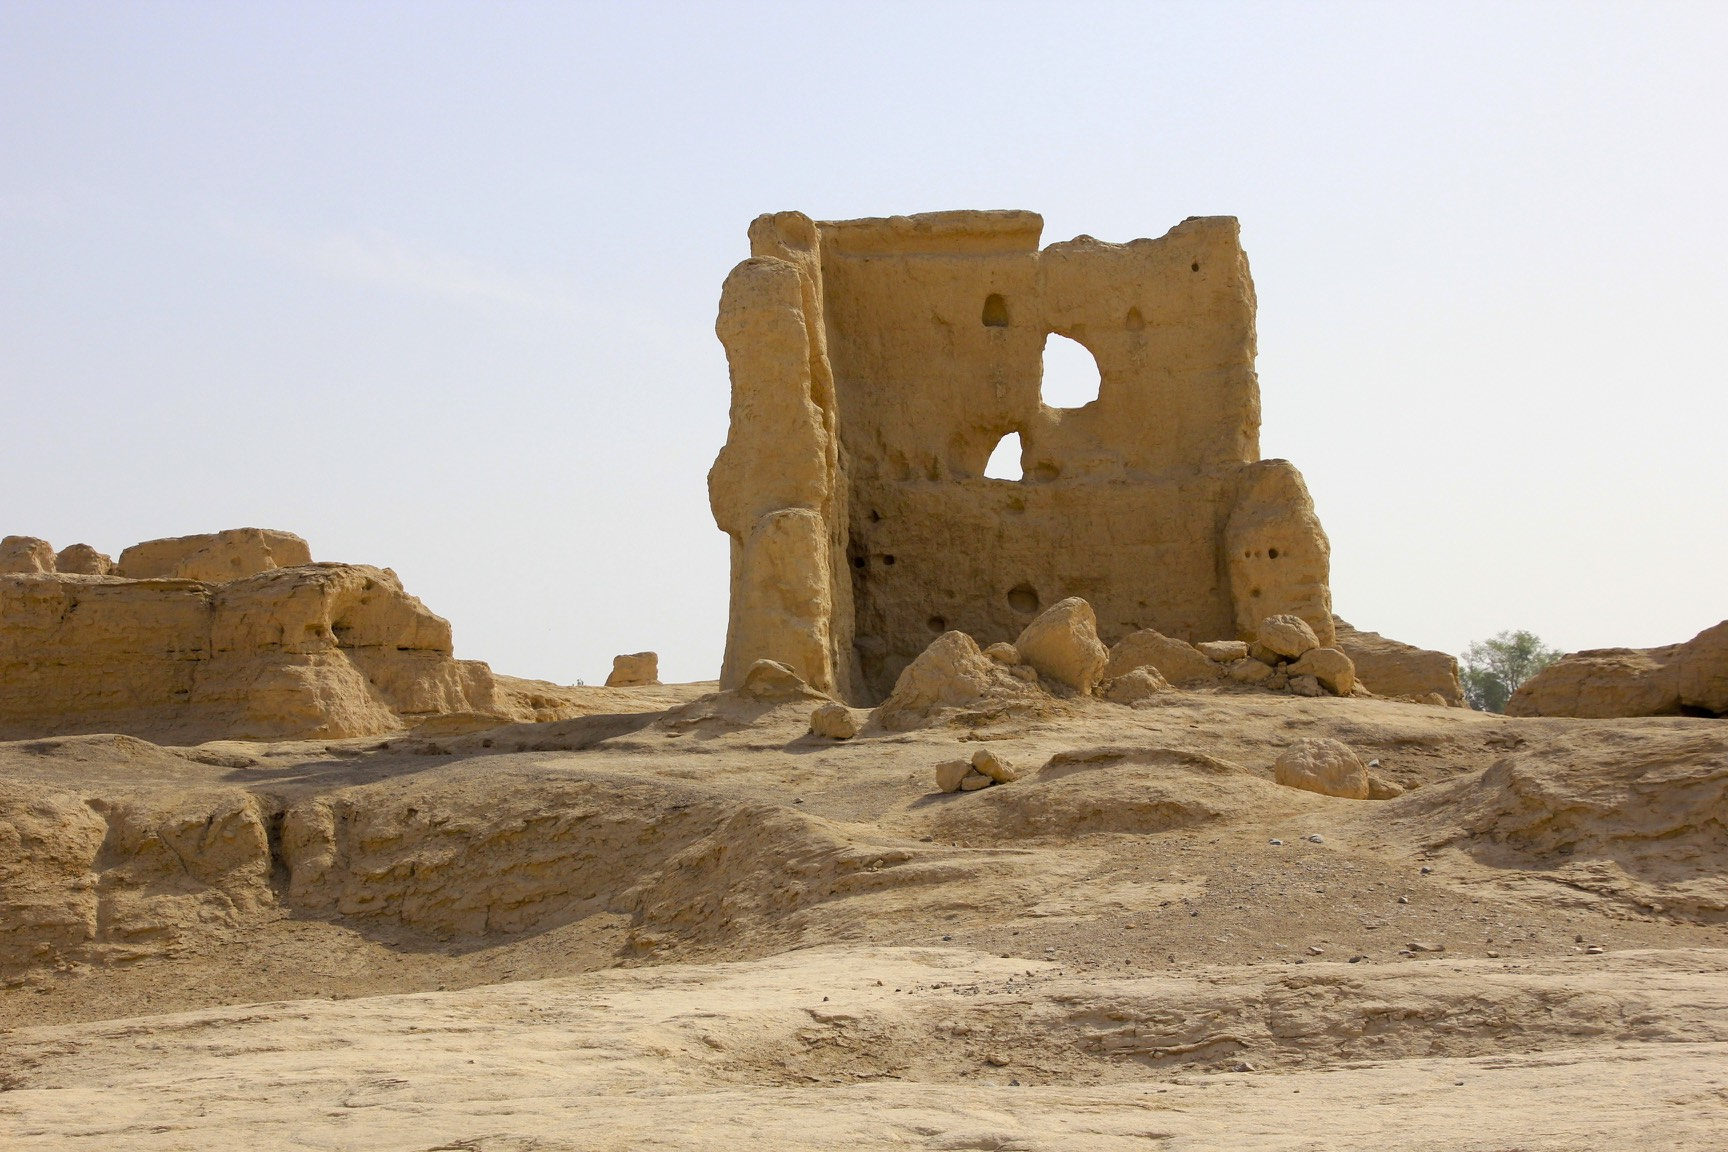 The Jiaohe Ruins, also known as Yar City near Turpan. From 450 AD until 640 AD it became Jiao prefecture in the Tang Dynasty